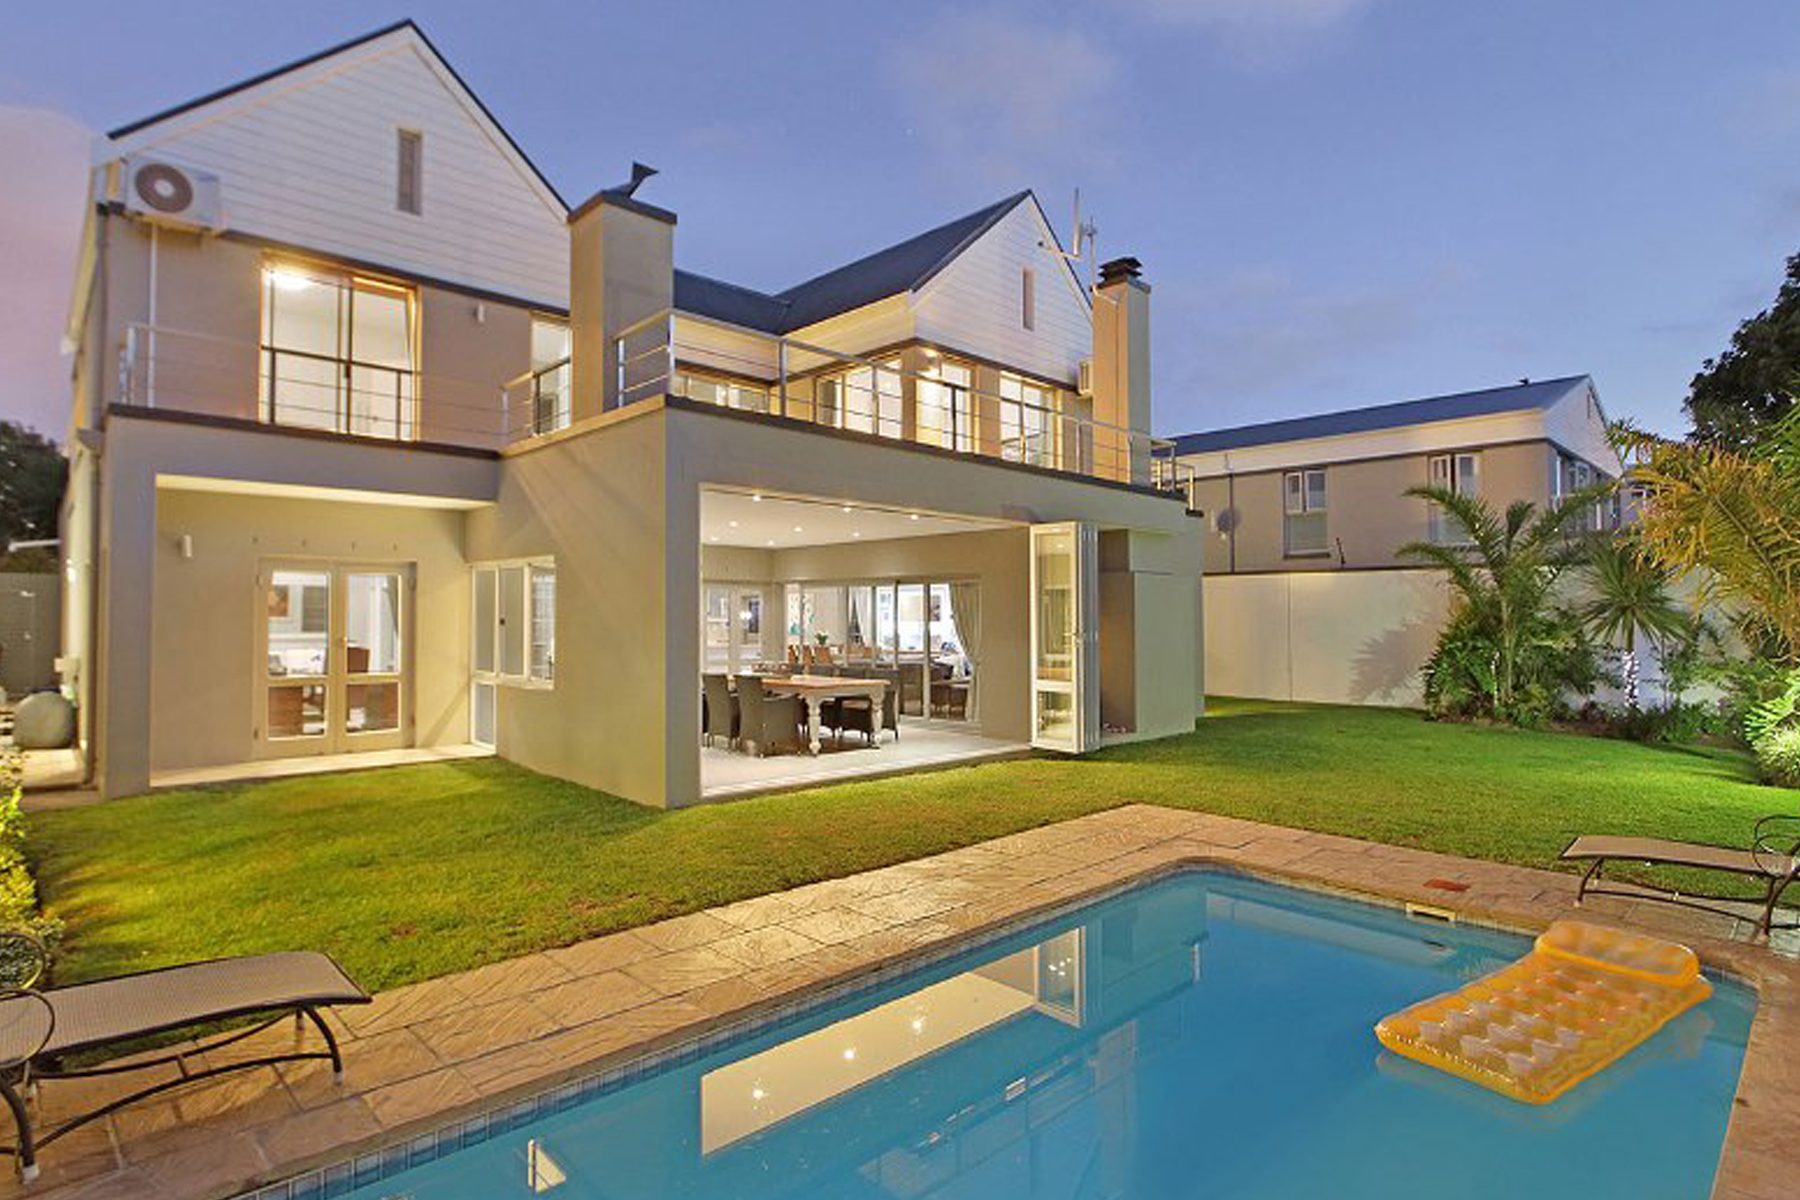 Single Family Home for Sale at Pine Road Cape Town, Western Cape 7945 South Africa